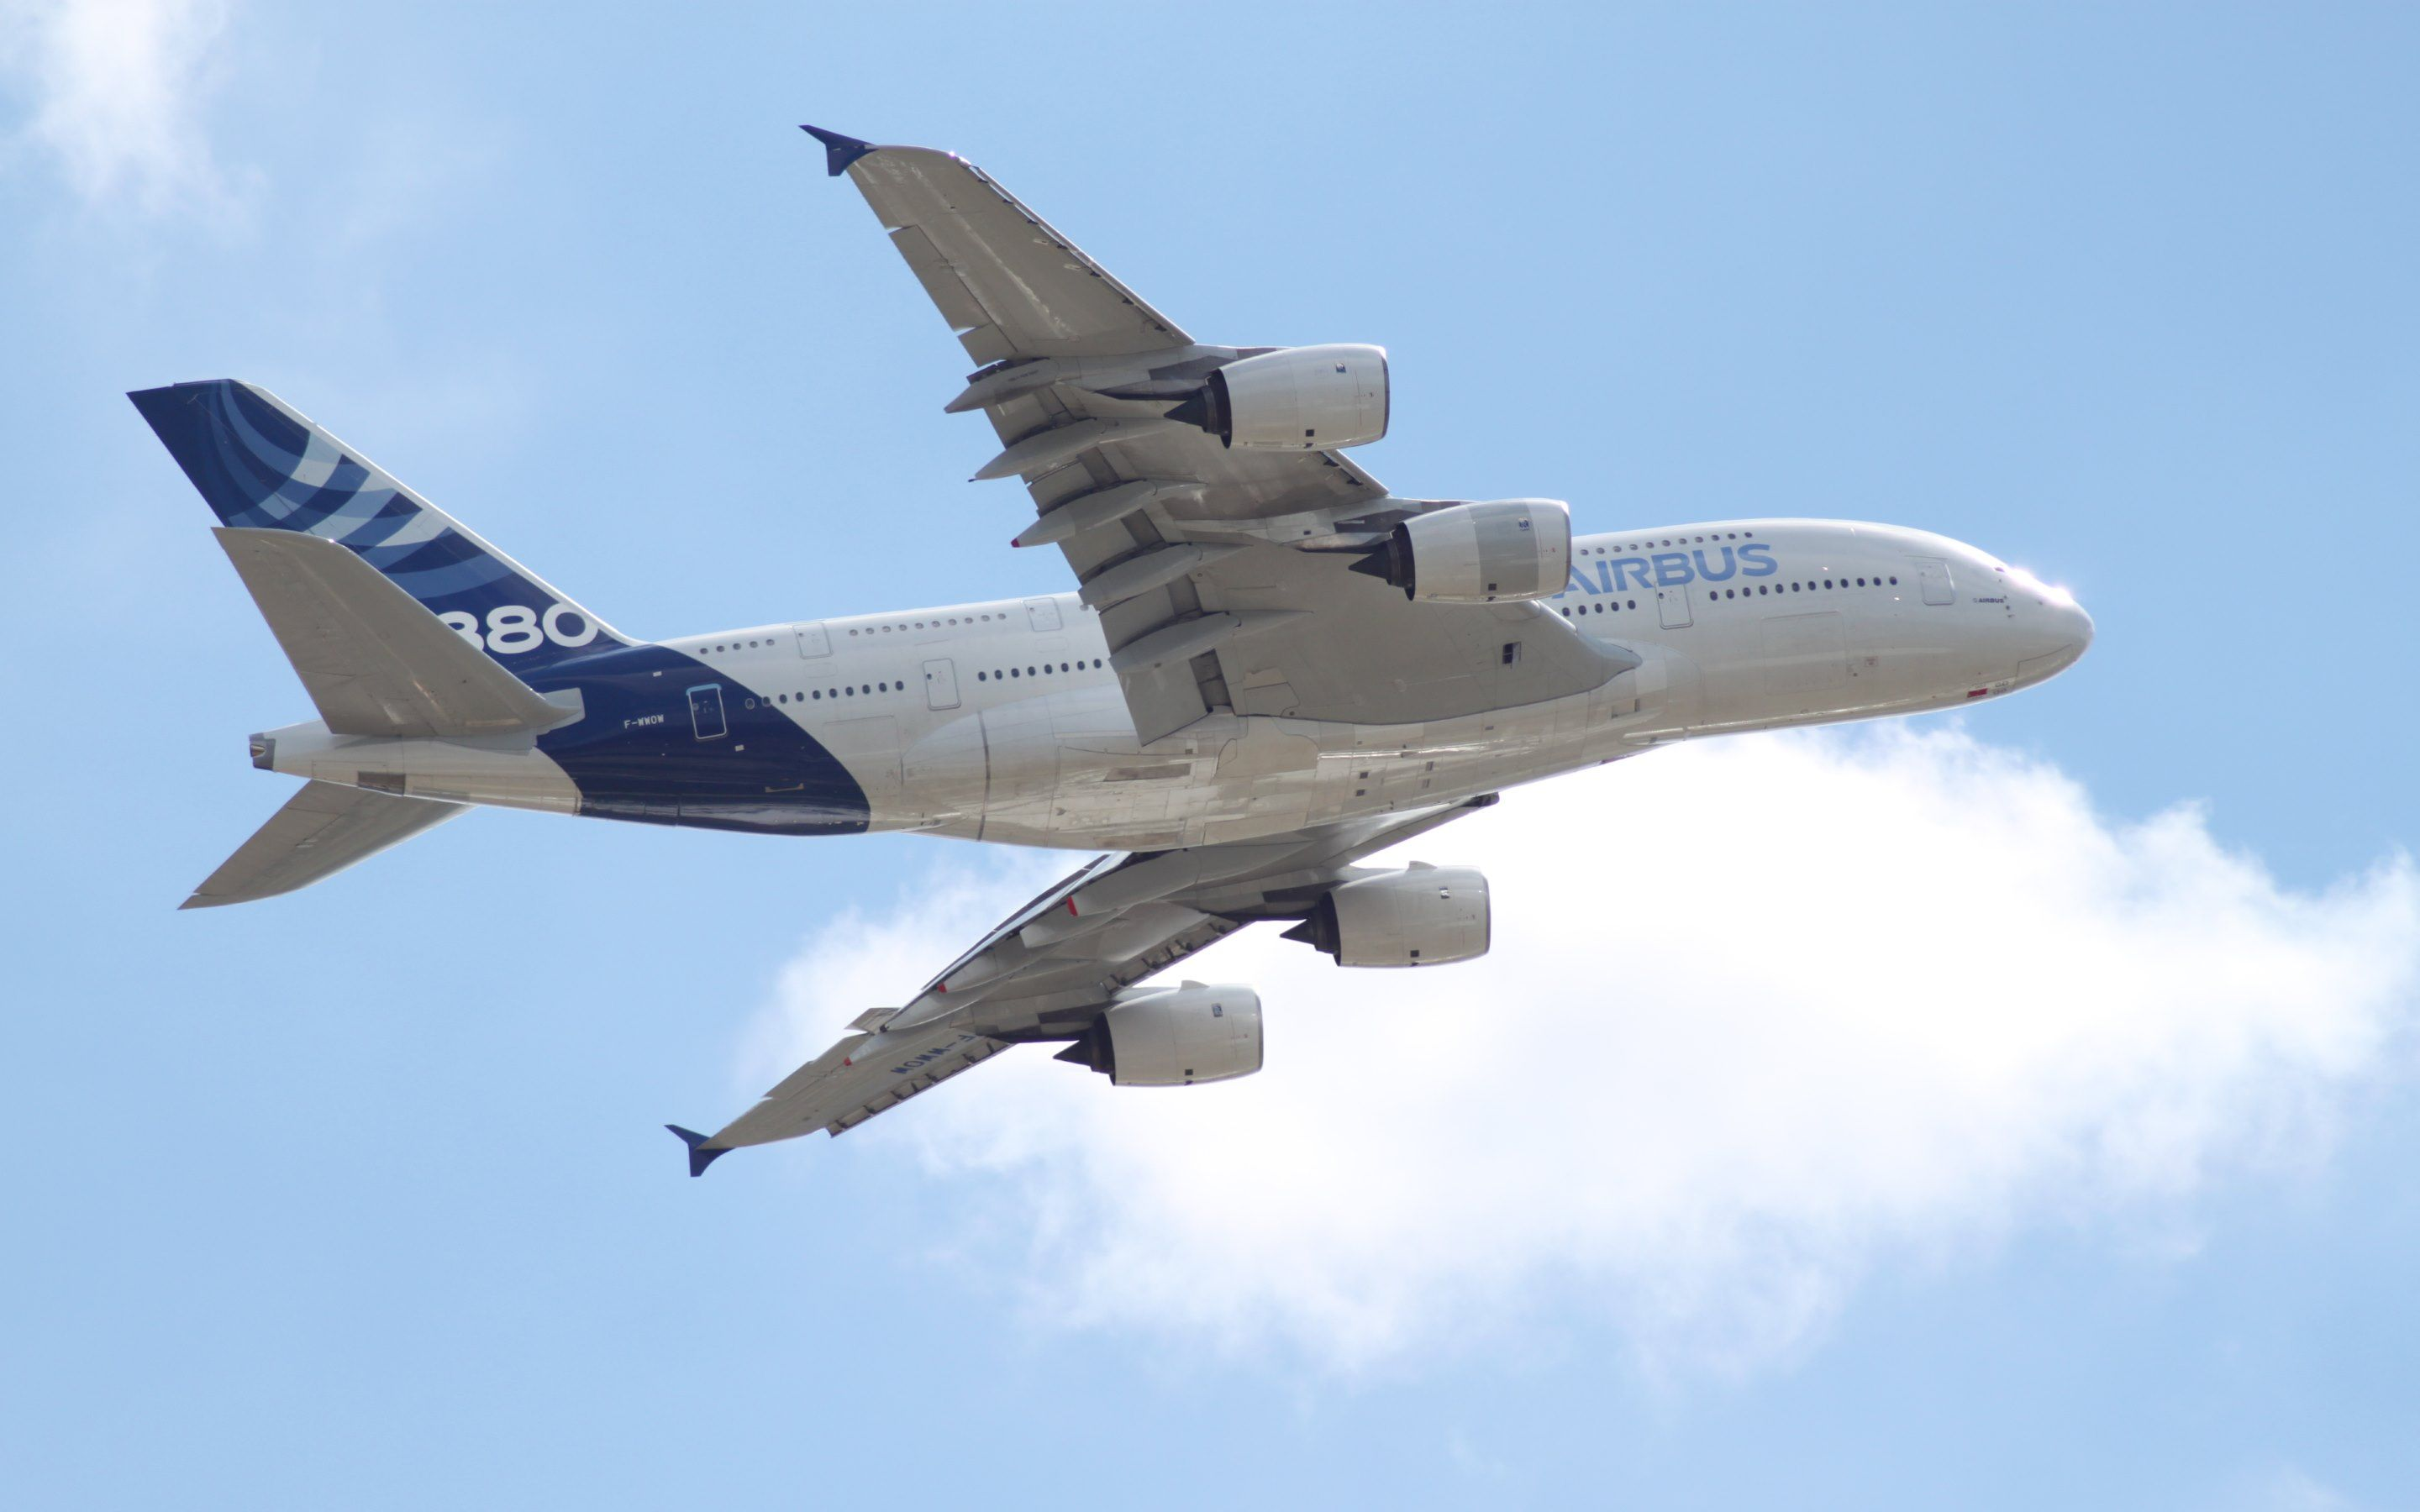 Airbus a380 hd wallpapers 4k wallpapers airbus a380 - 4k cockpit wallpaper ...